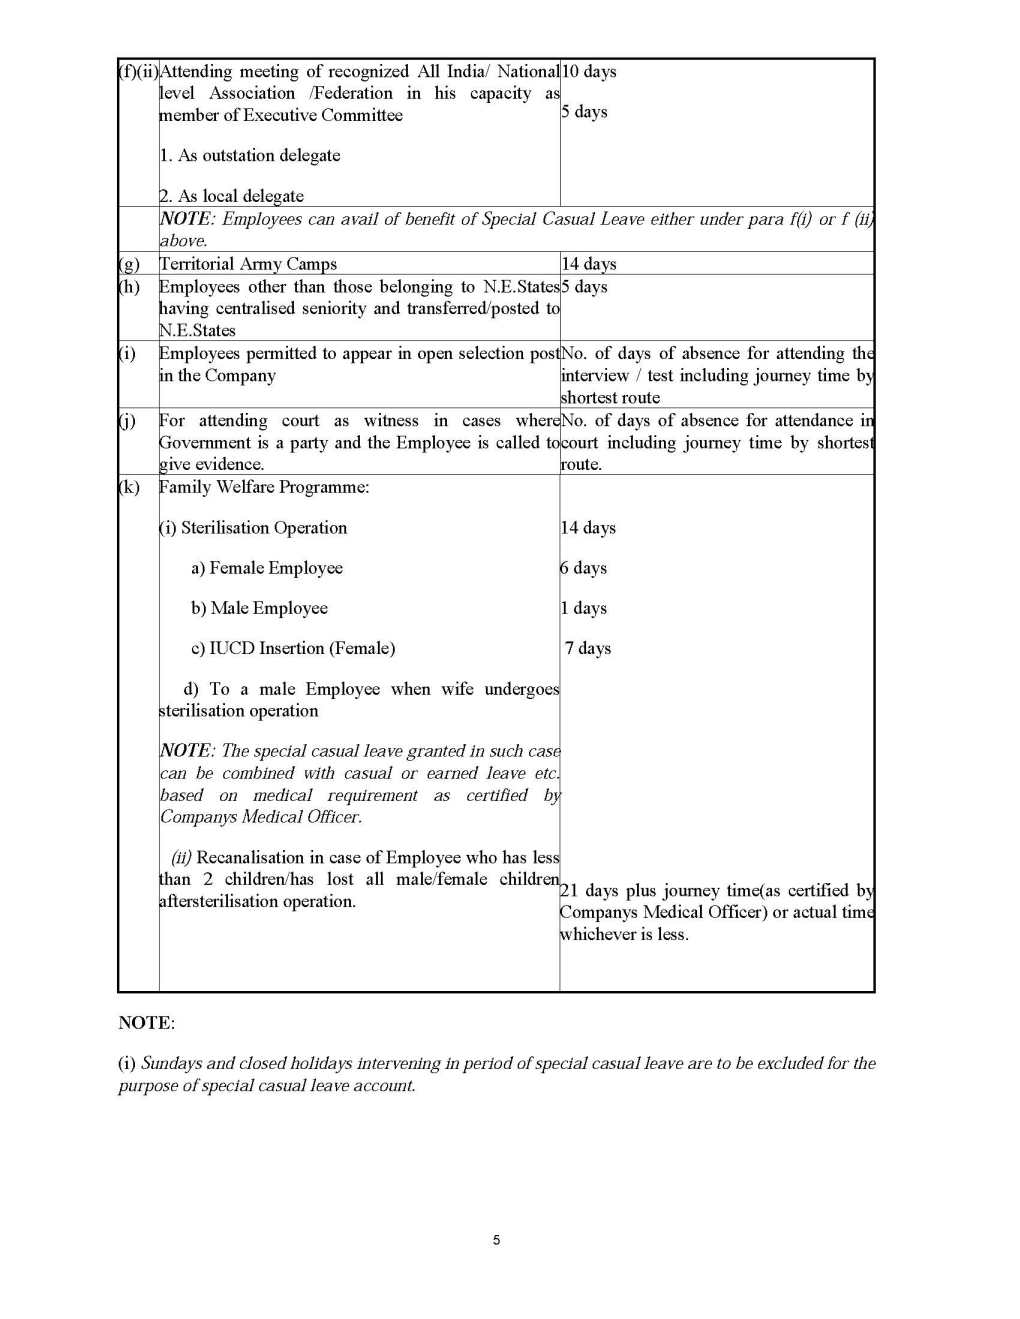 ist schedule of leave rules 1972